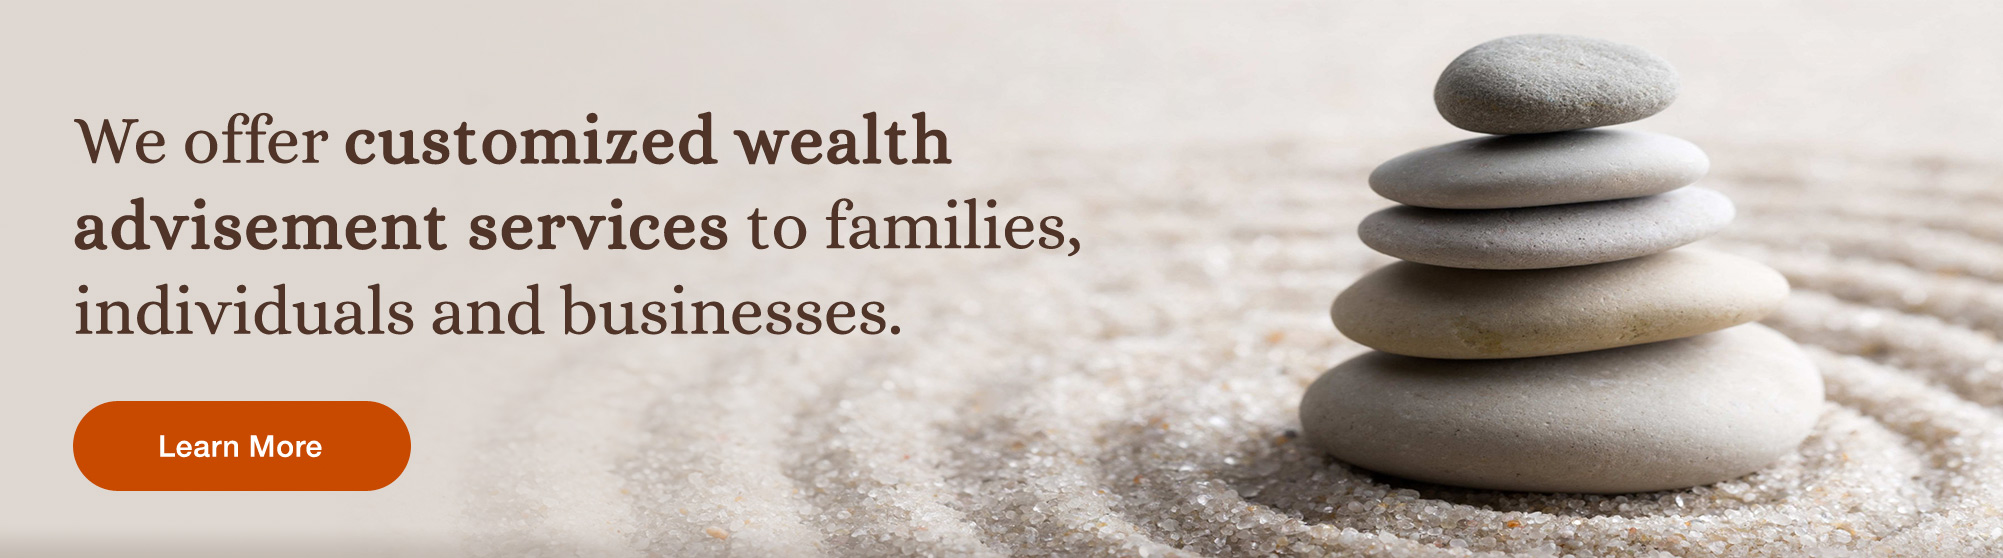 Holistic wealth management wealth financial advisory services llc - Holistic Wealth Management Wealth Financial Advisory Services Llc Holistic Wealth Management Wealth Financial Advisory Services